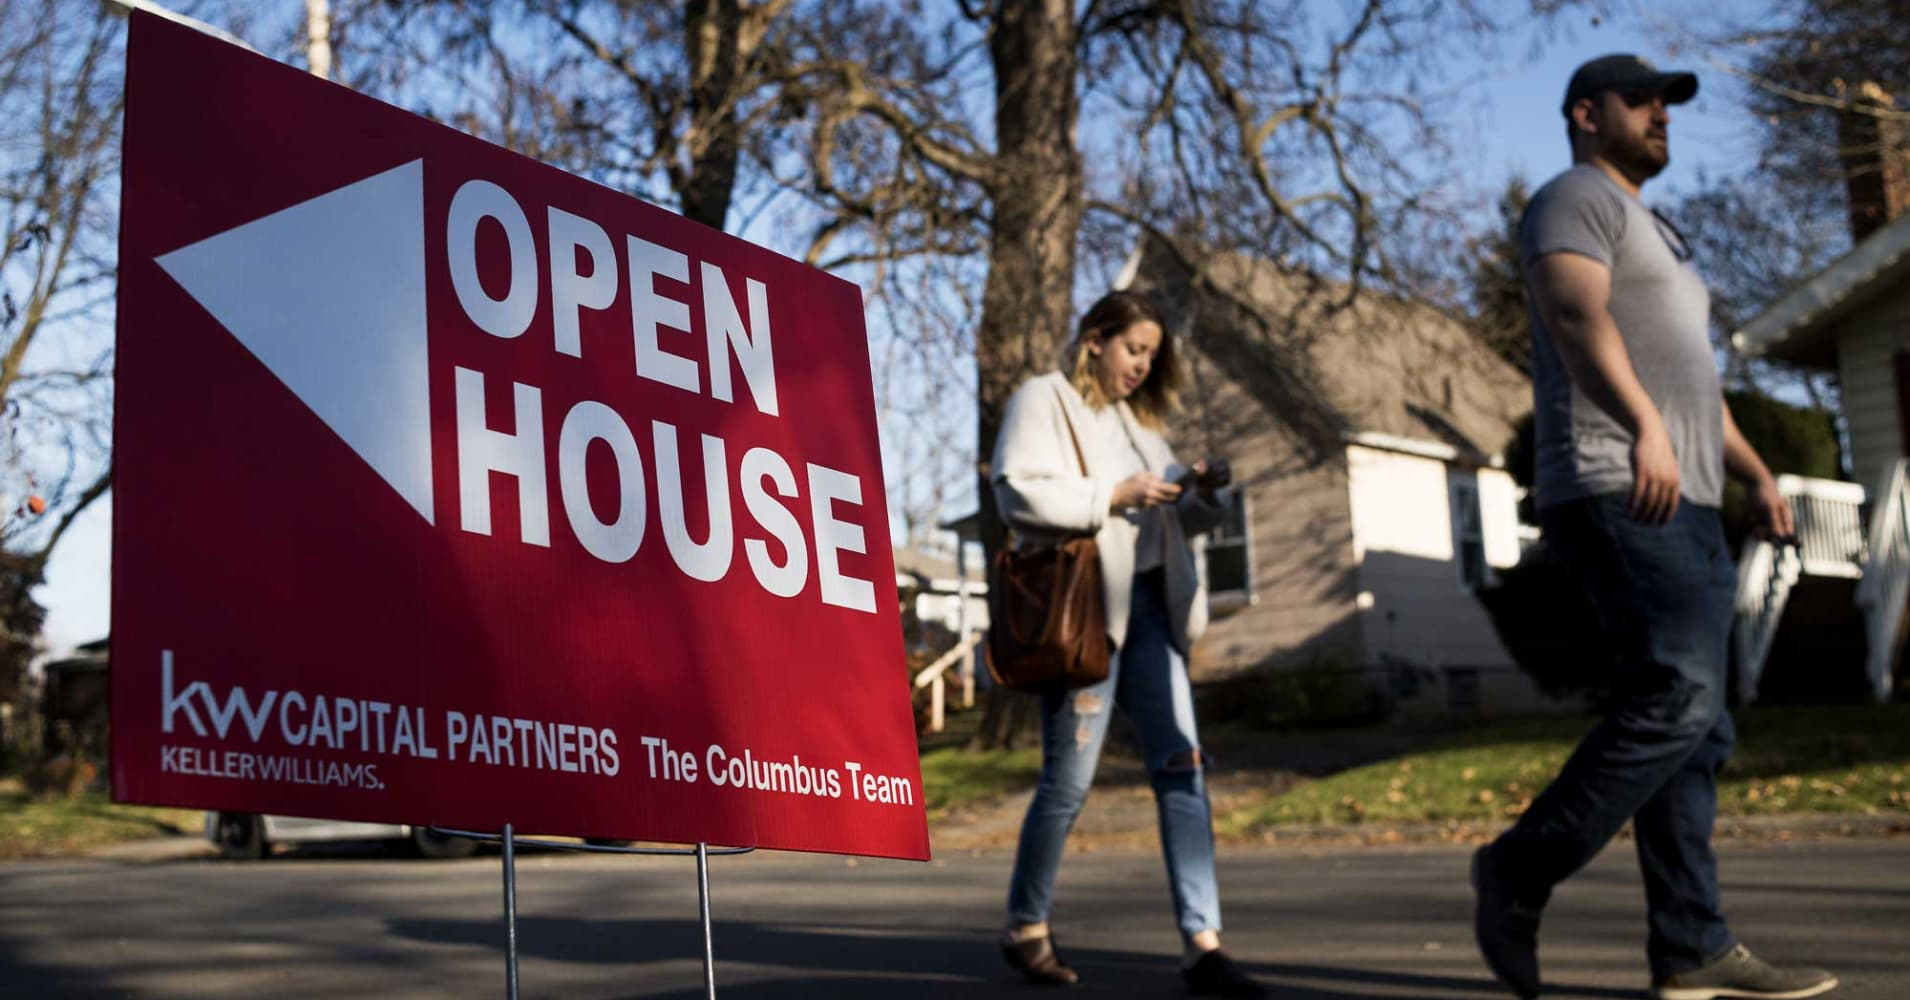 cnbc.com - Diana Olick - Weekly mortgage applications rise 1.6% as interest rates hit a 7-year high